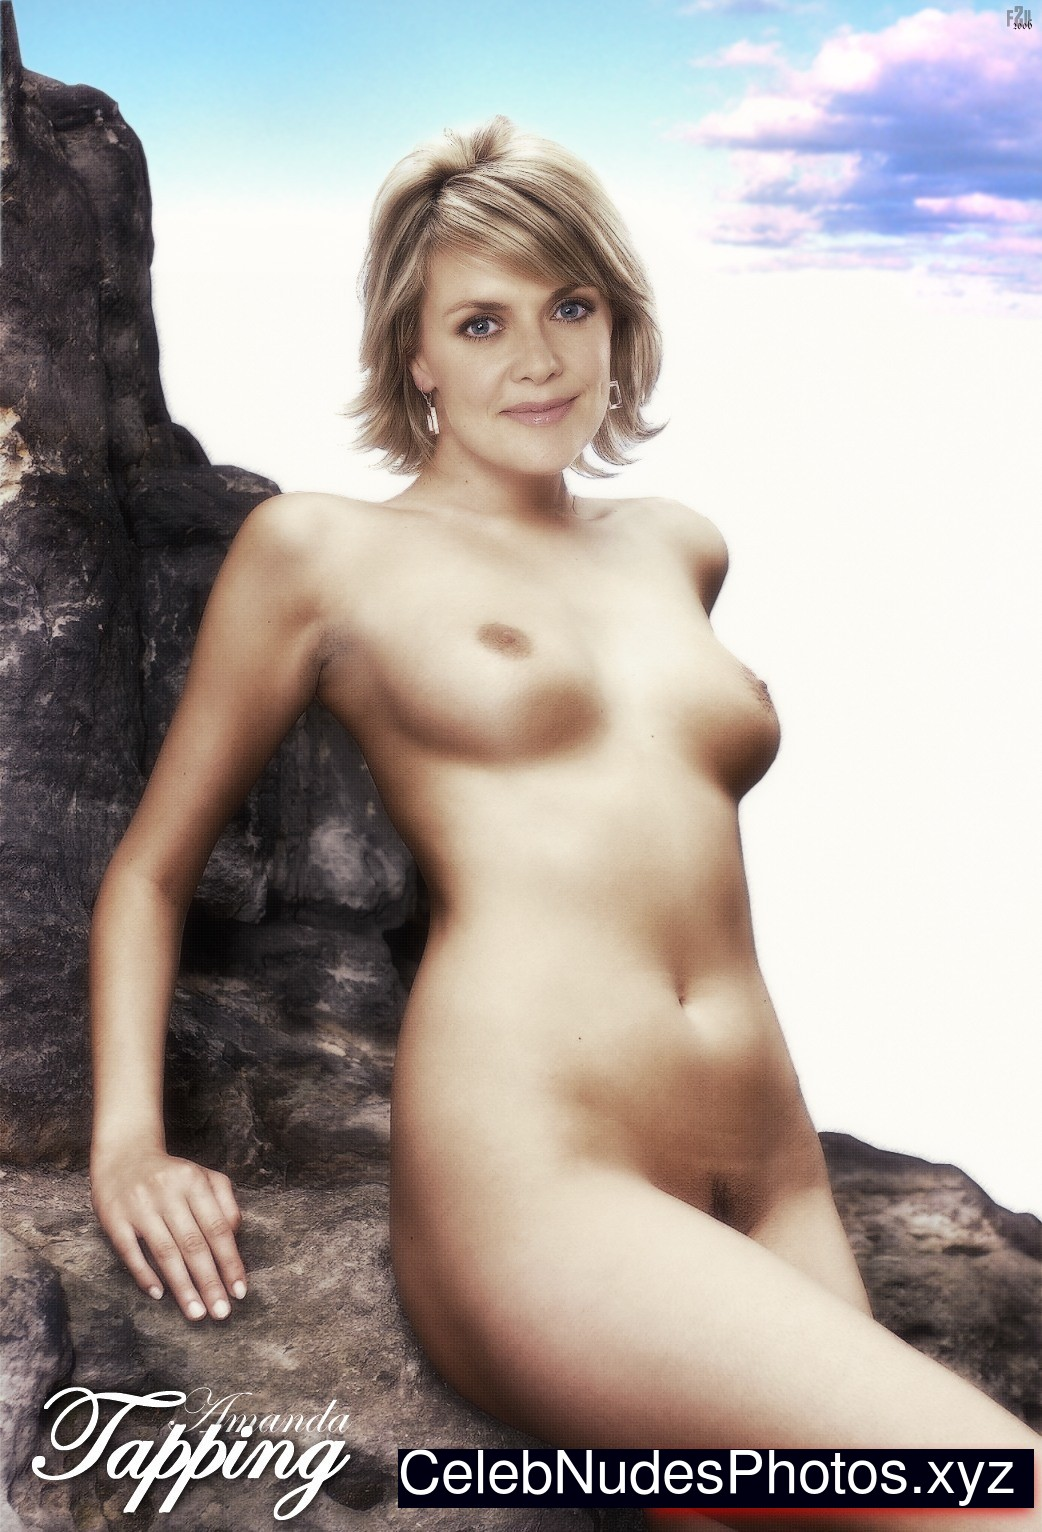 Amanda Tapping Celebrities Naked sexy 10